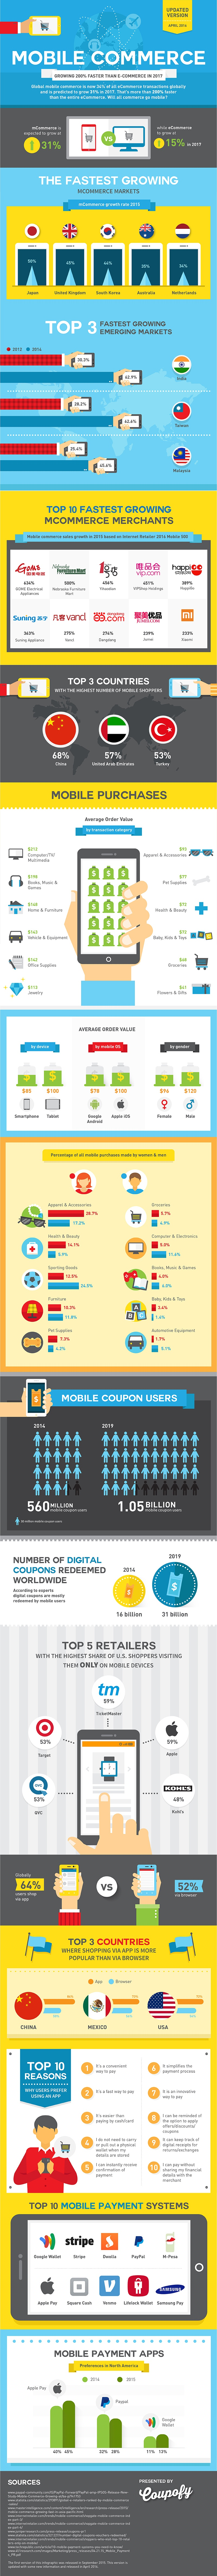 Mobile Commerce [INFOGRAPHIC]